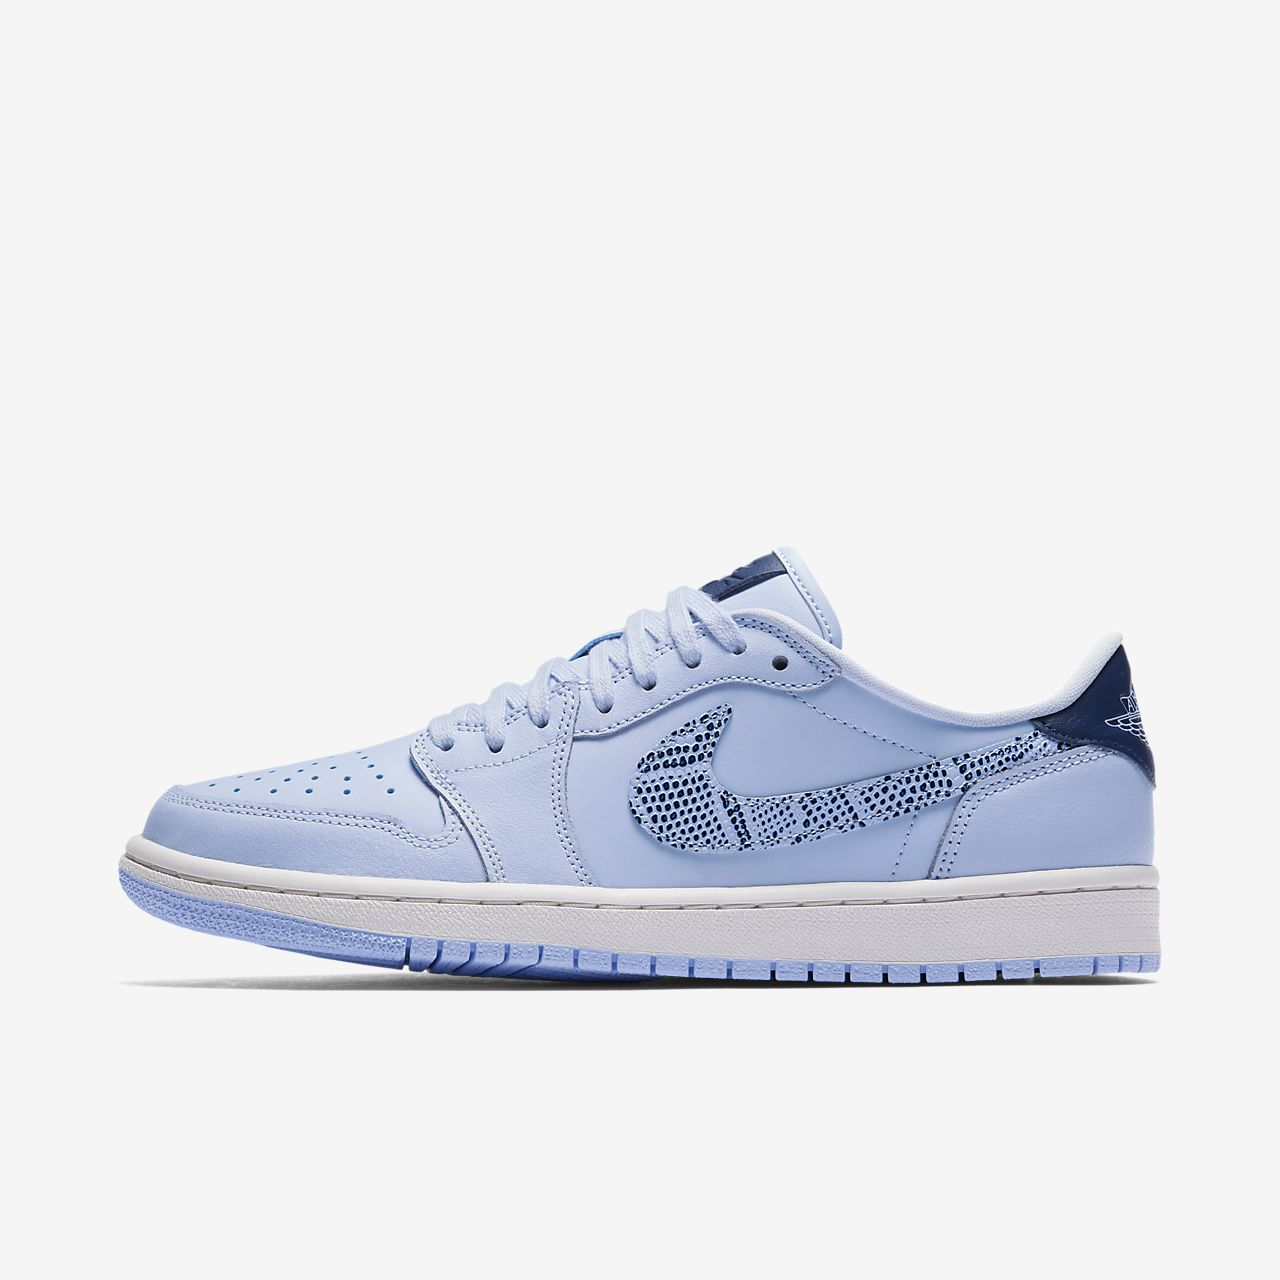 save off 2b0ac d712c ... get air jordan 1 retro low og damenschuh 79942 b06b8